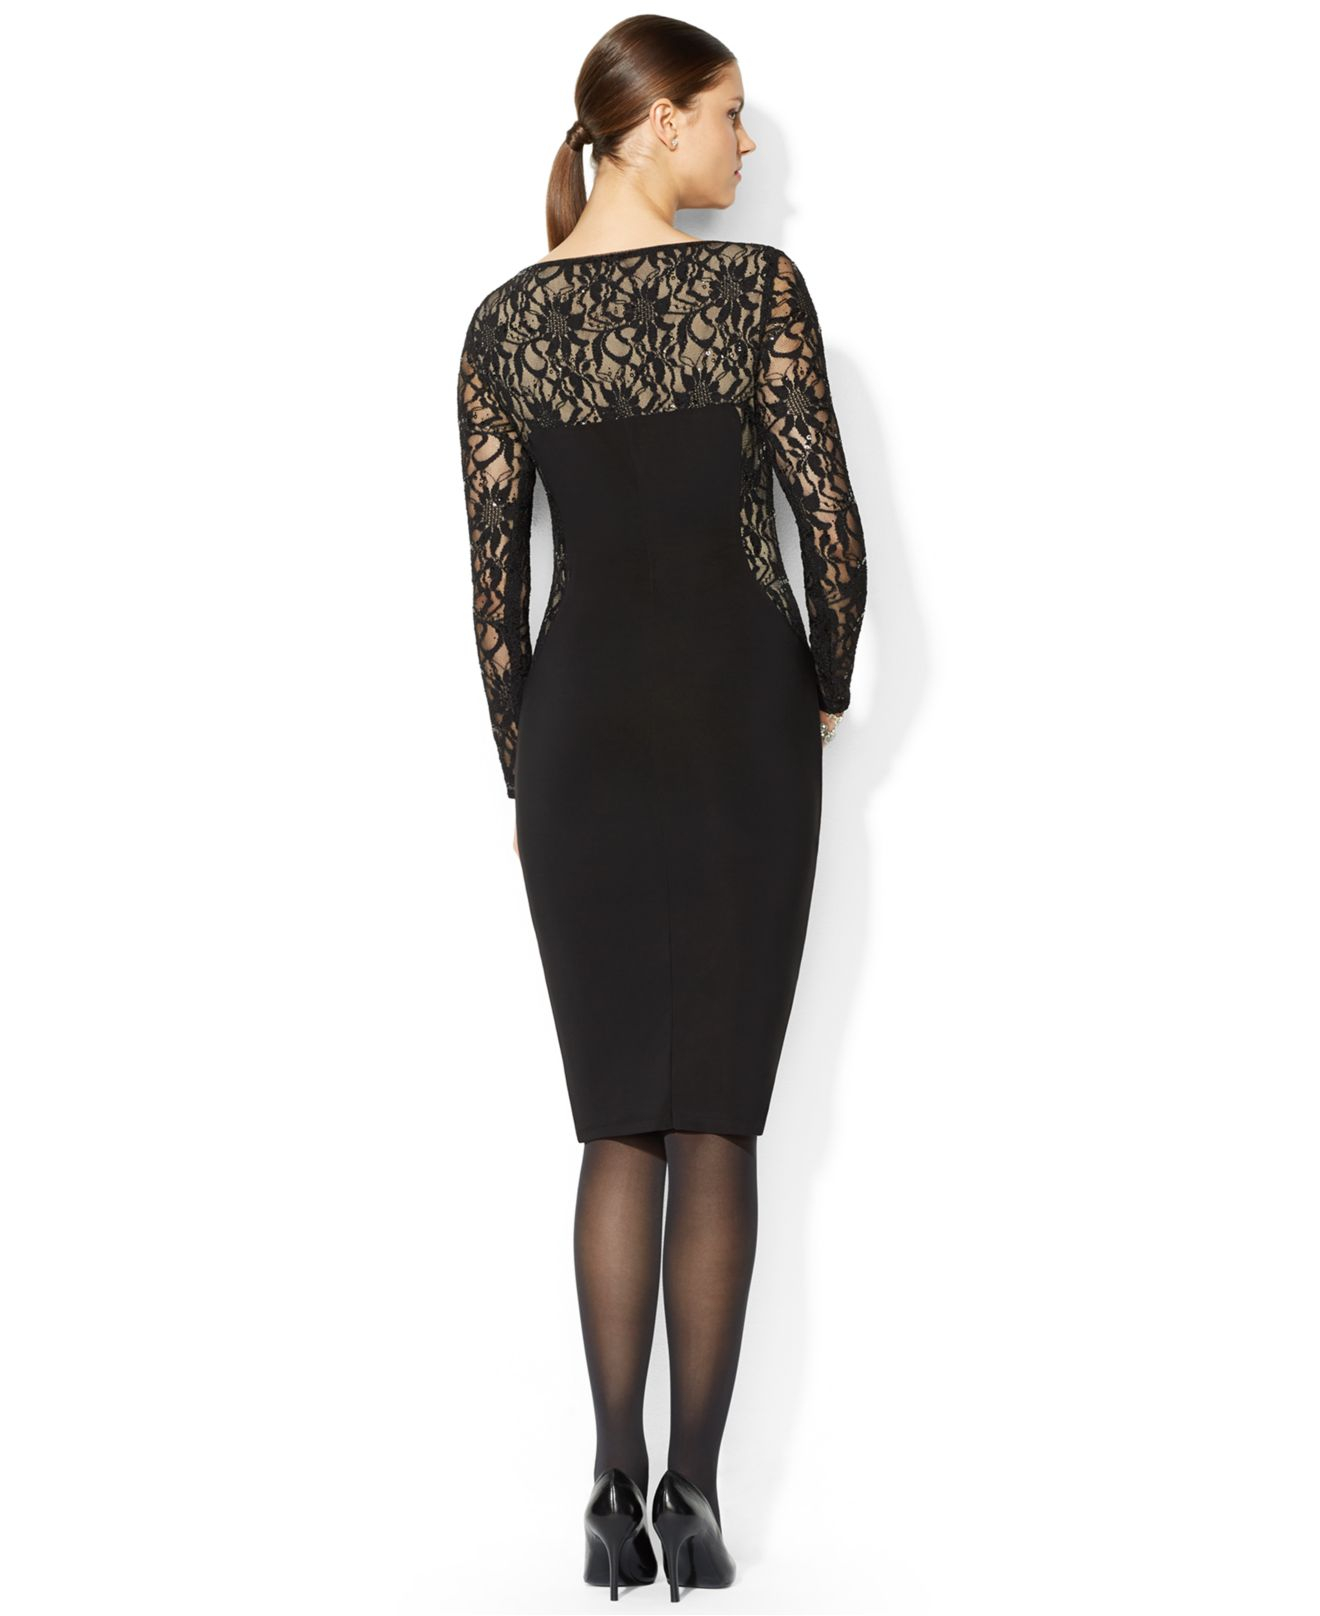 Lauren by ralph lauren Petite Long-Sleeve Illusion-Lace Sheath ...